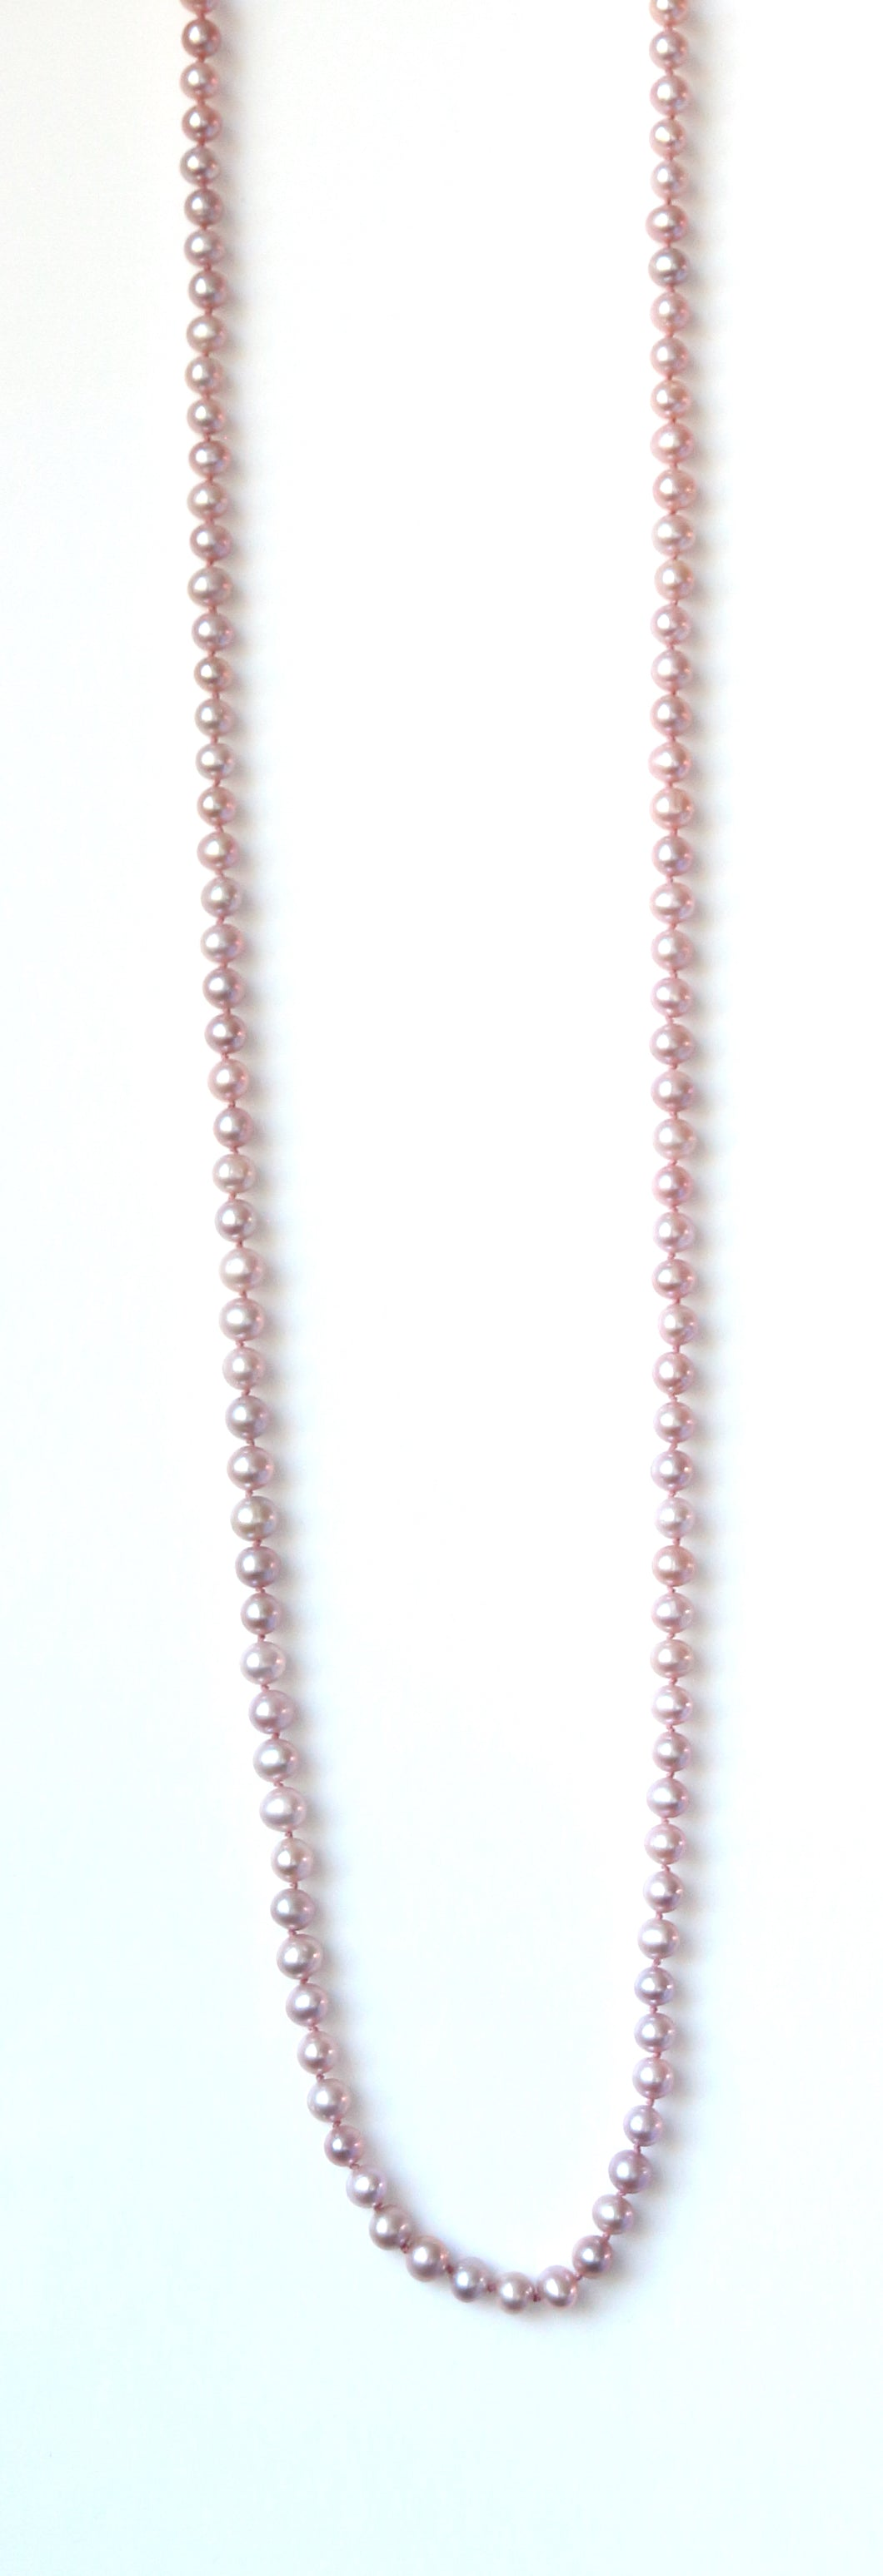 Australian Handmade Pink Long Necklace with Natural Colour Pink Pearls